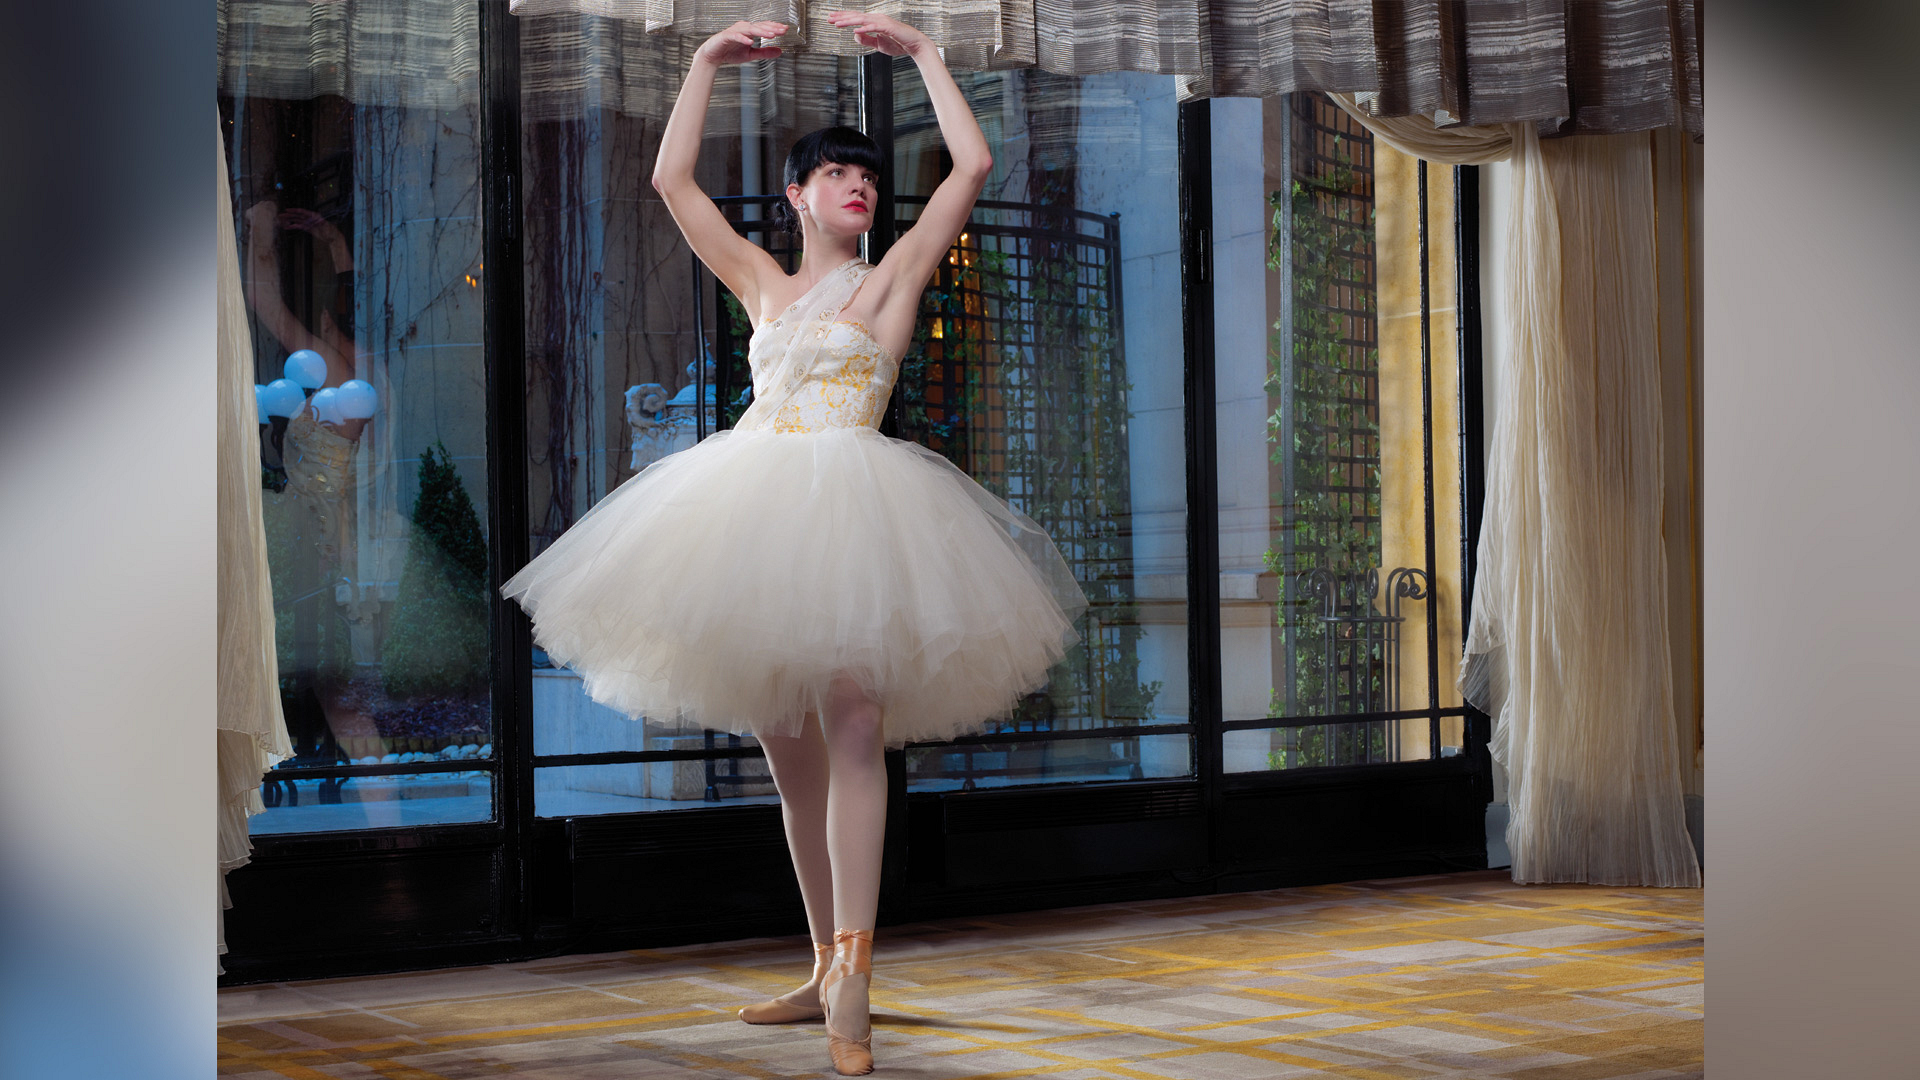 Pauley Perrette as a prima ballerina